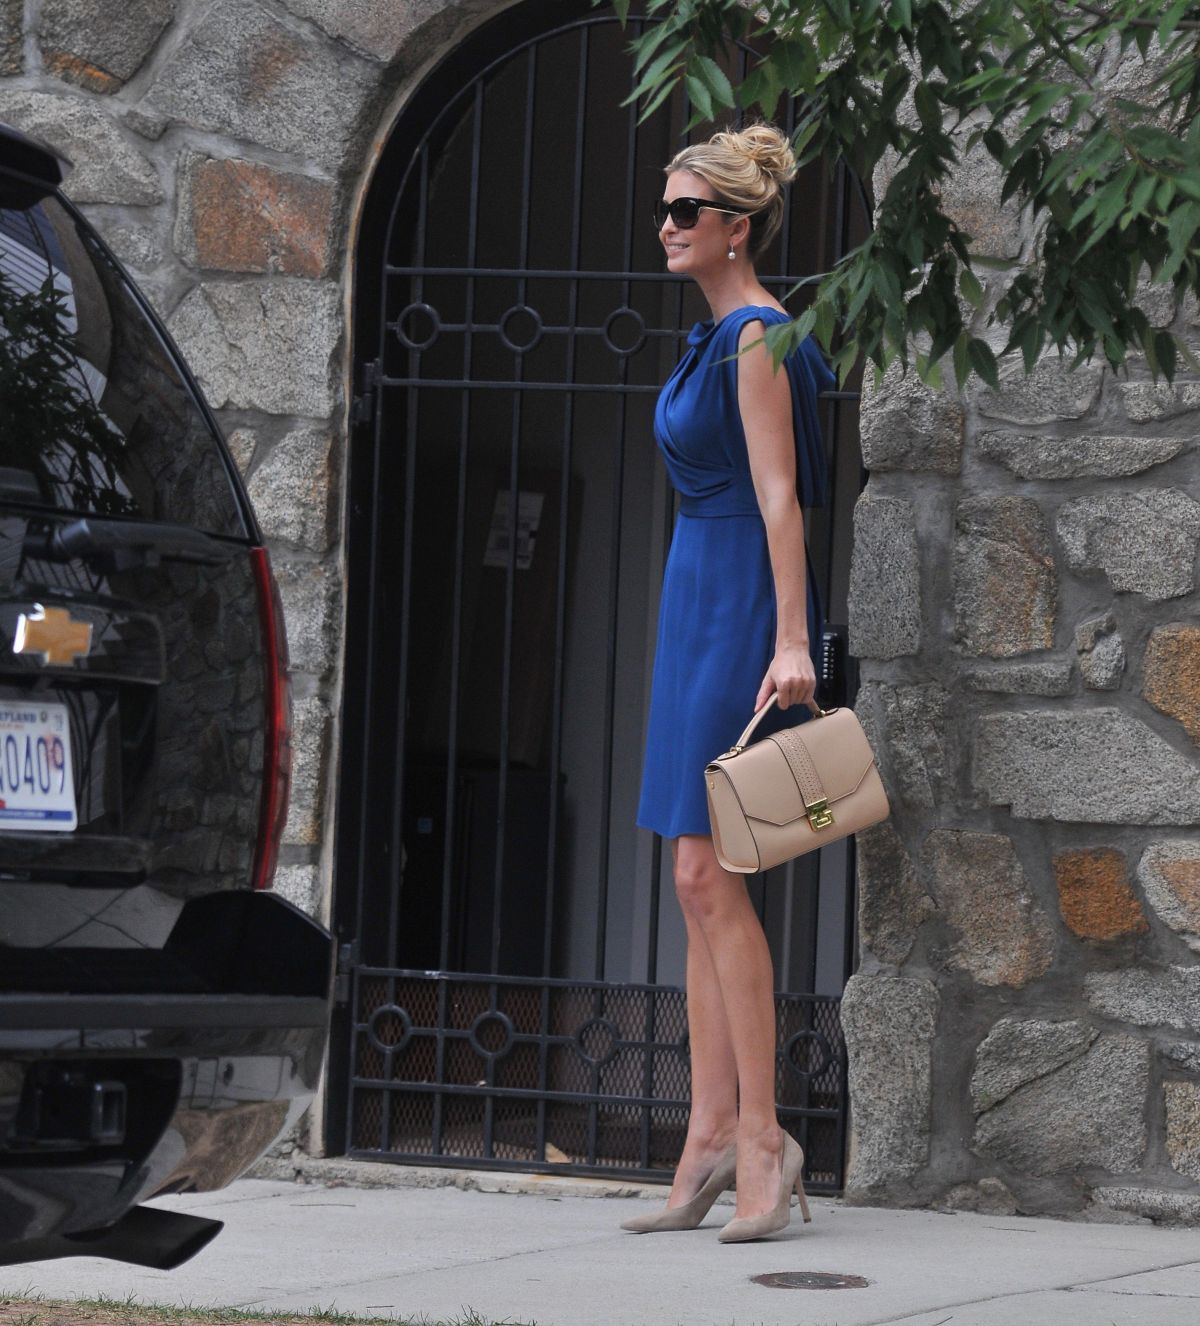 Ivanka Trump Heads to work in Washington D.C. ivanka-trump-heads-to-